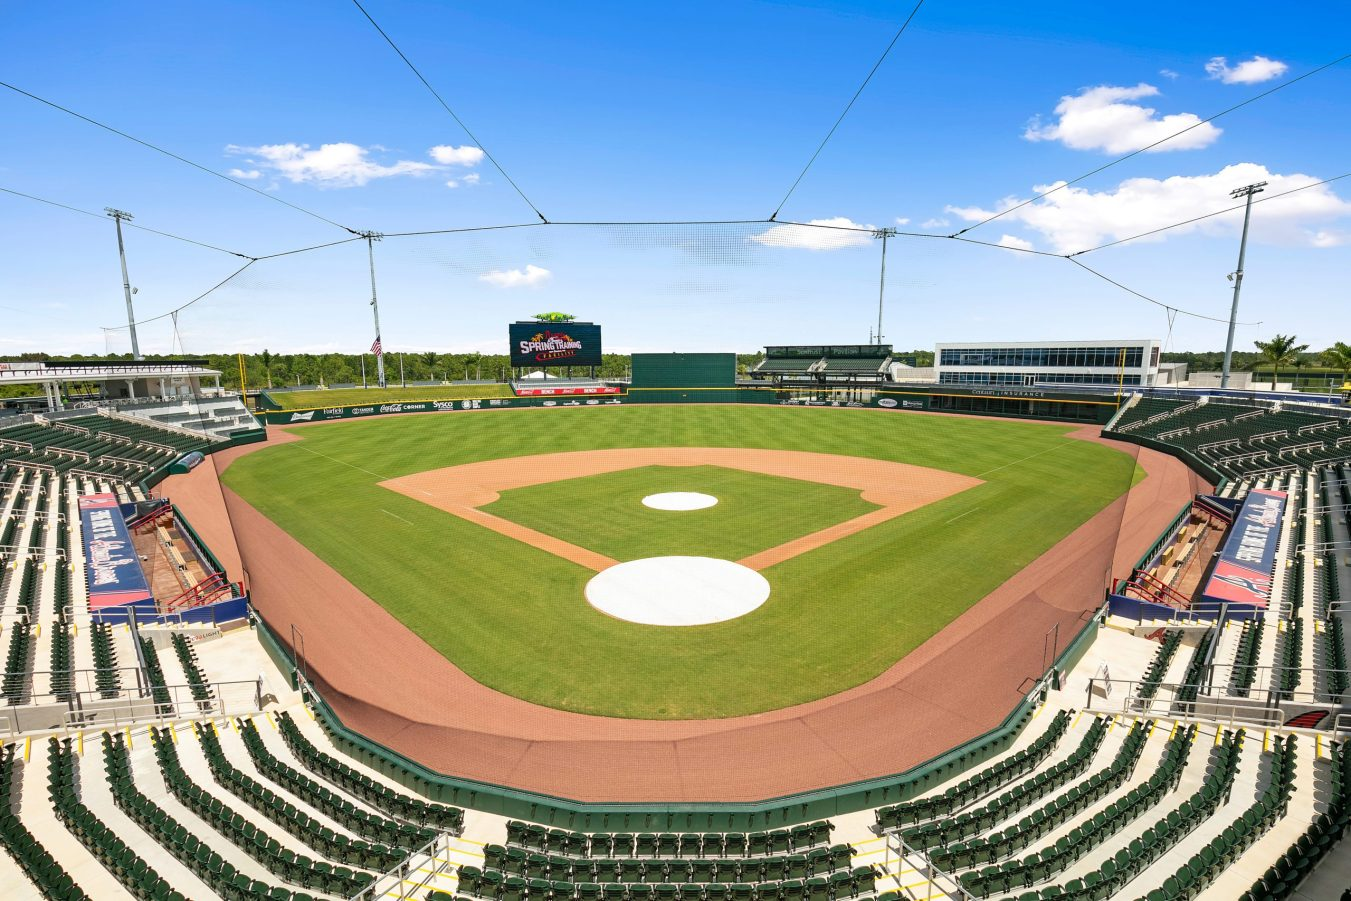 A view of the Atlanta Braves Spring Training stadium from behind home plate